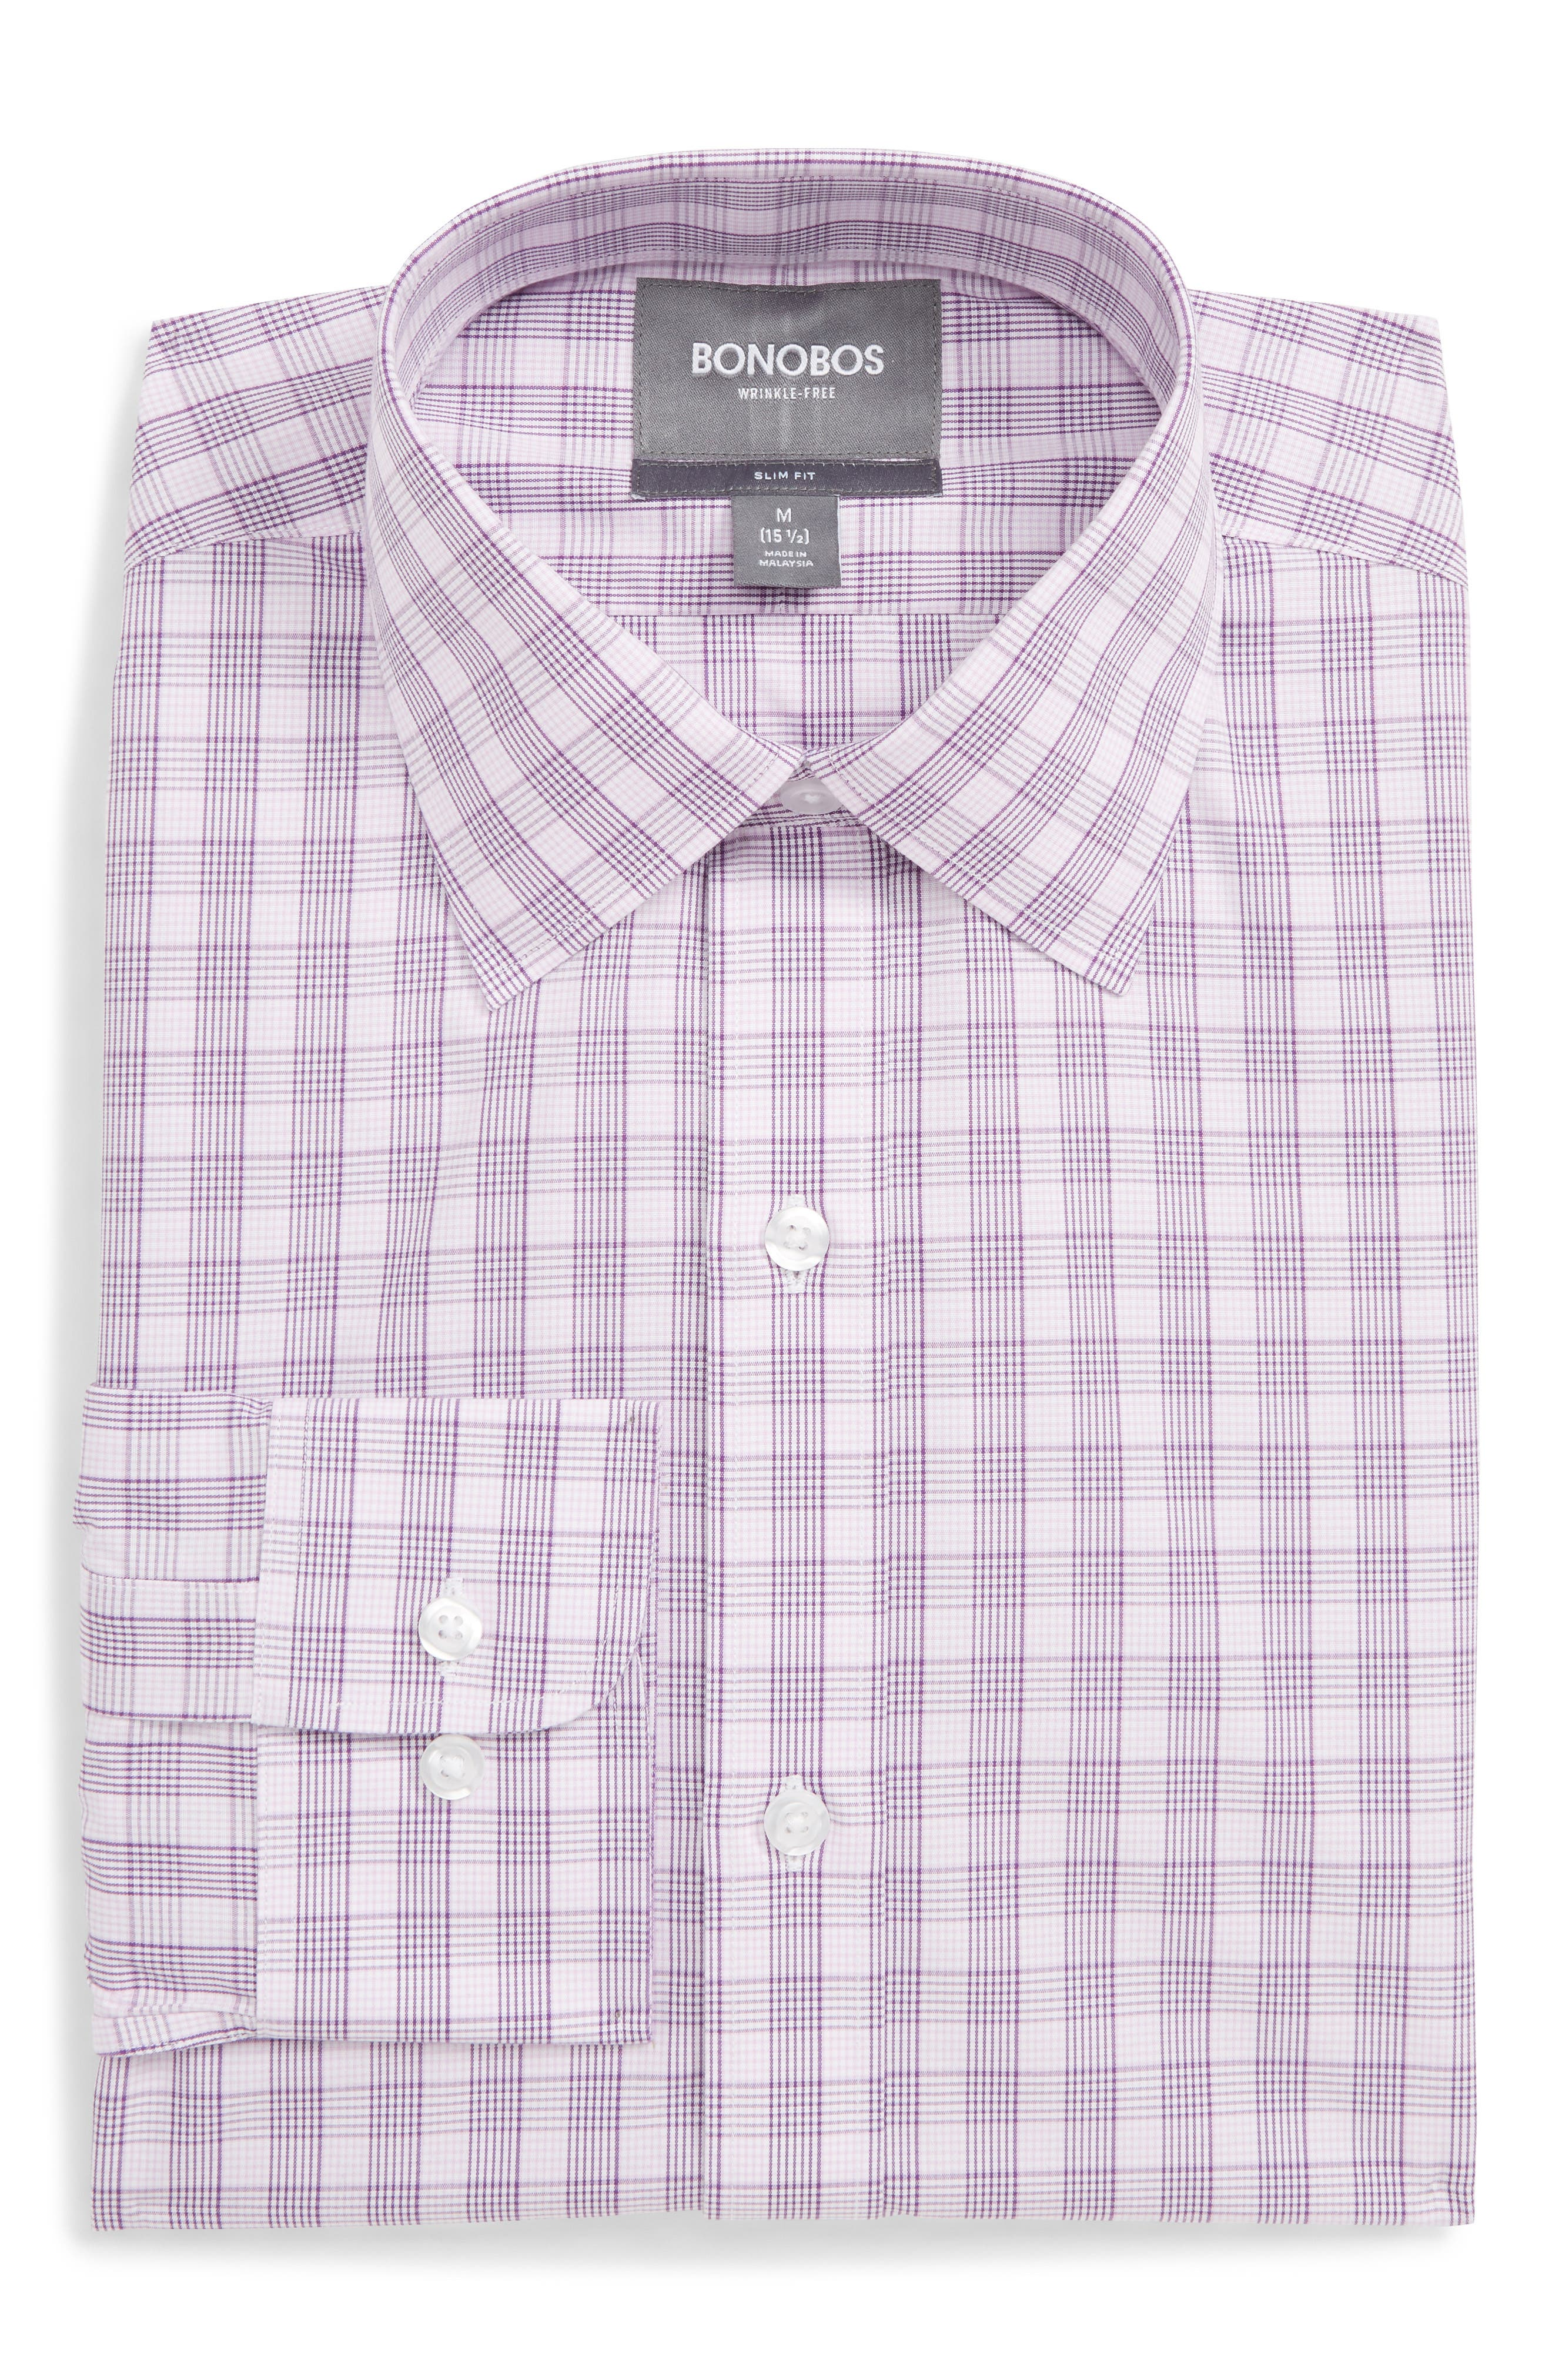 Bonobos Slim Fit Wrinkle-Free Cotton Dress Shirt